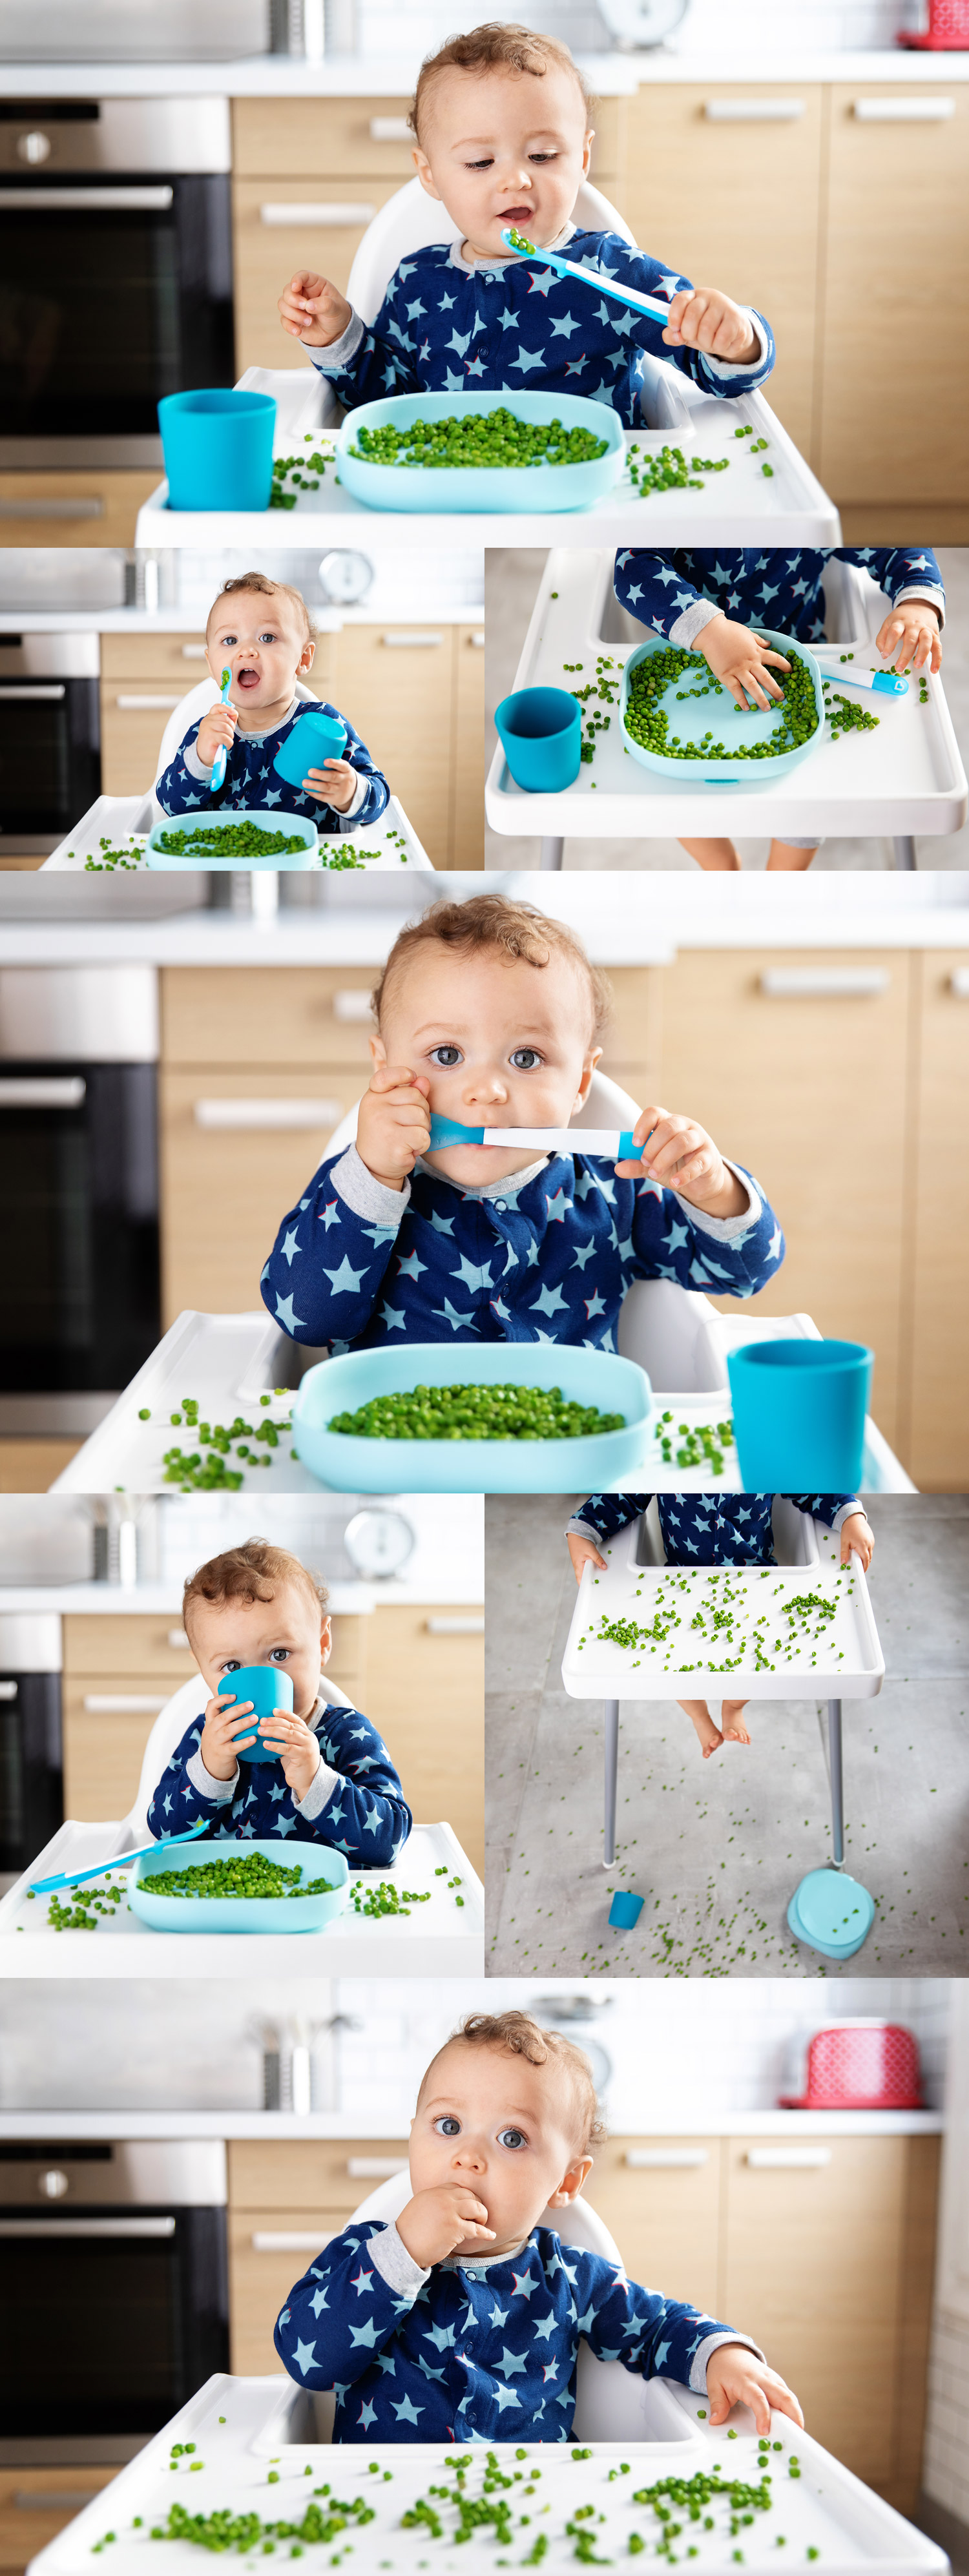 Baby in high chair eating green peas by commercial baby photographer Lisa Tichane